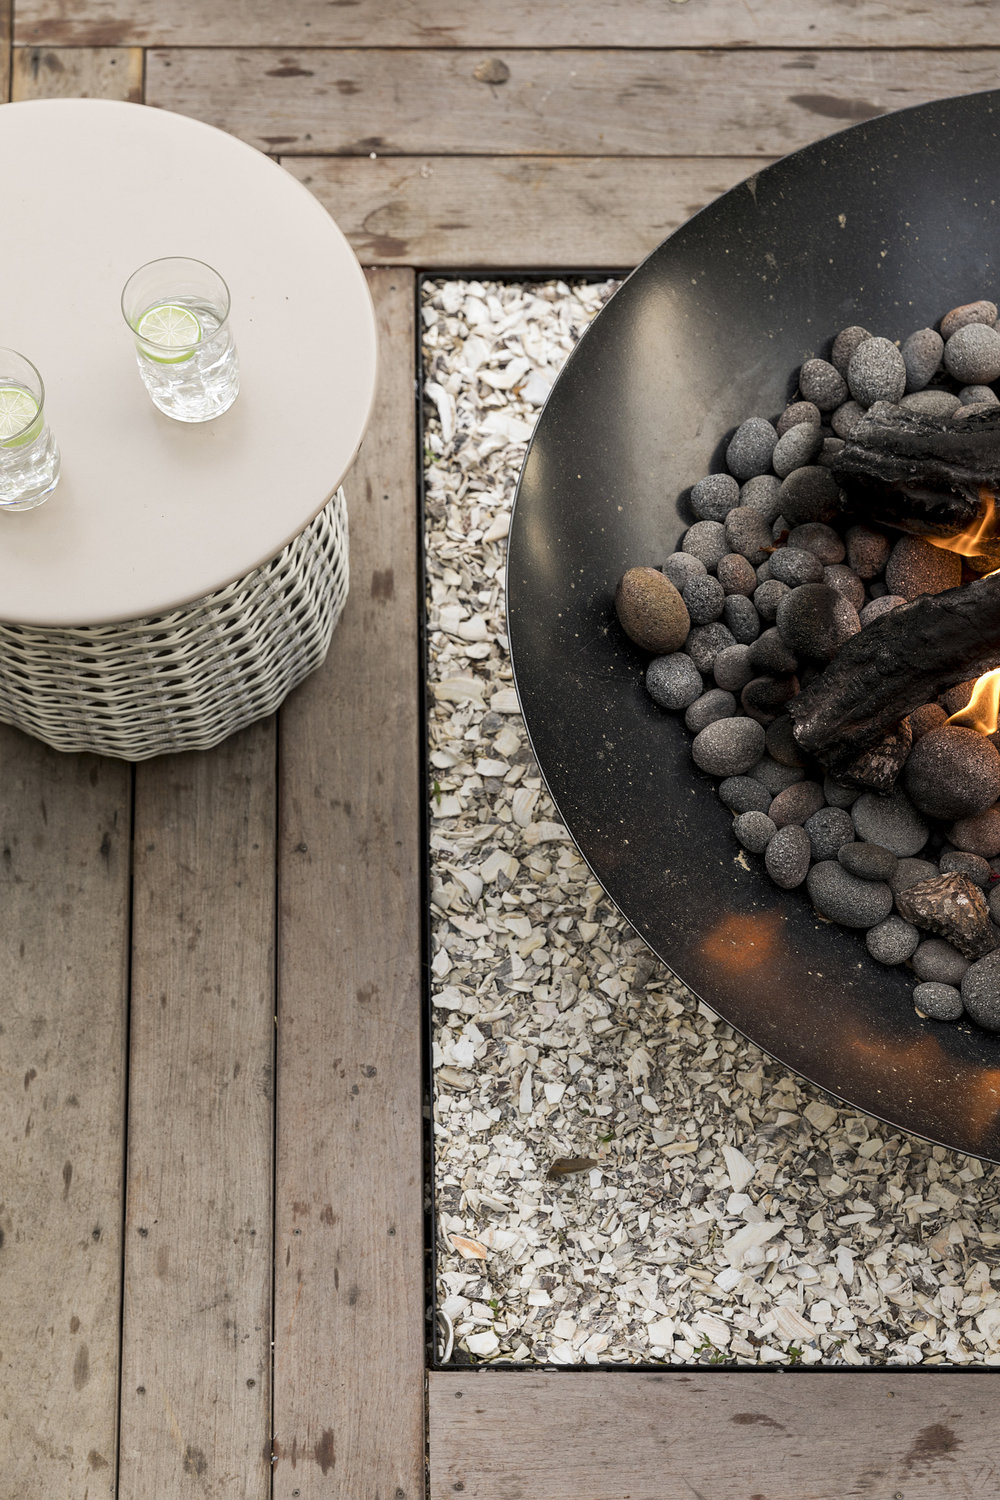 Mom's Design Build - Natural Gas Fire Bowl